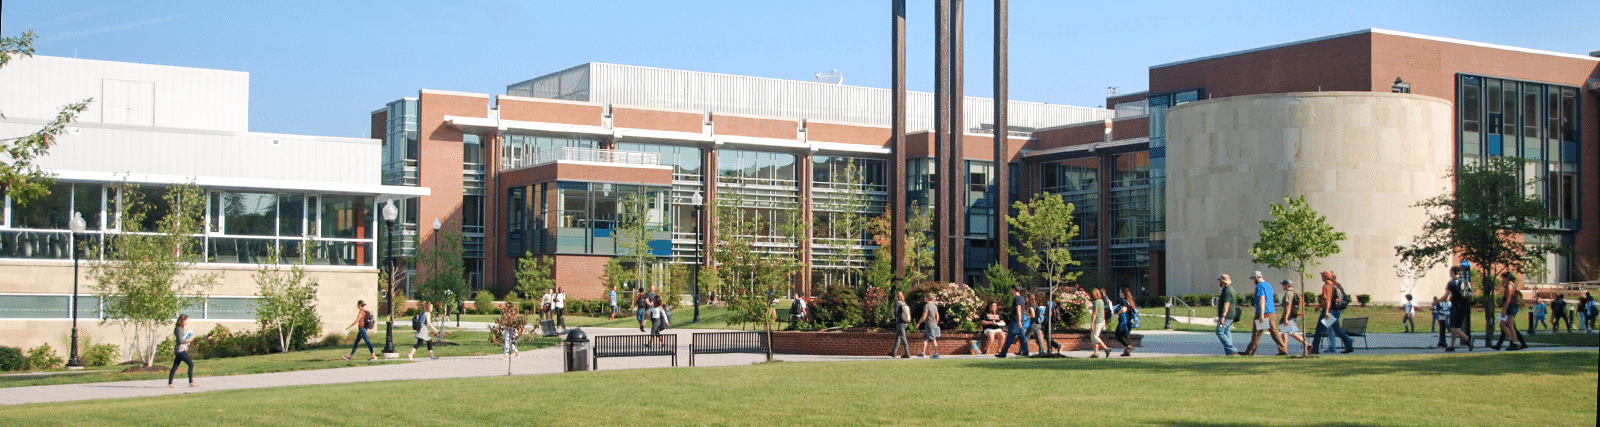 Frostburg State University - Current Student Directory